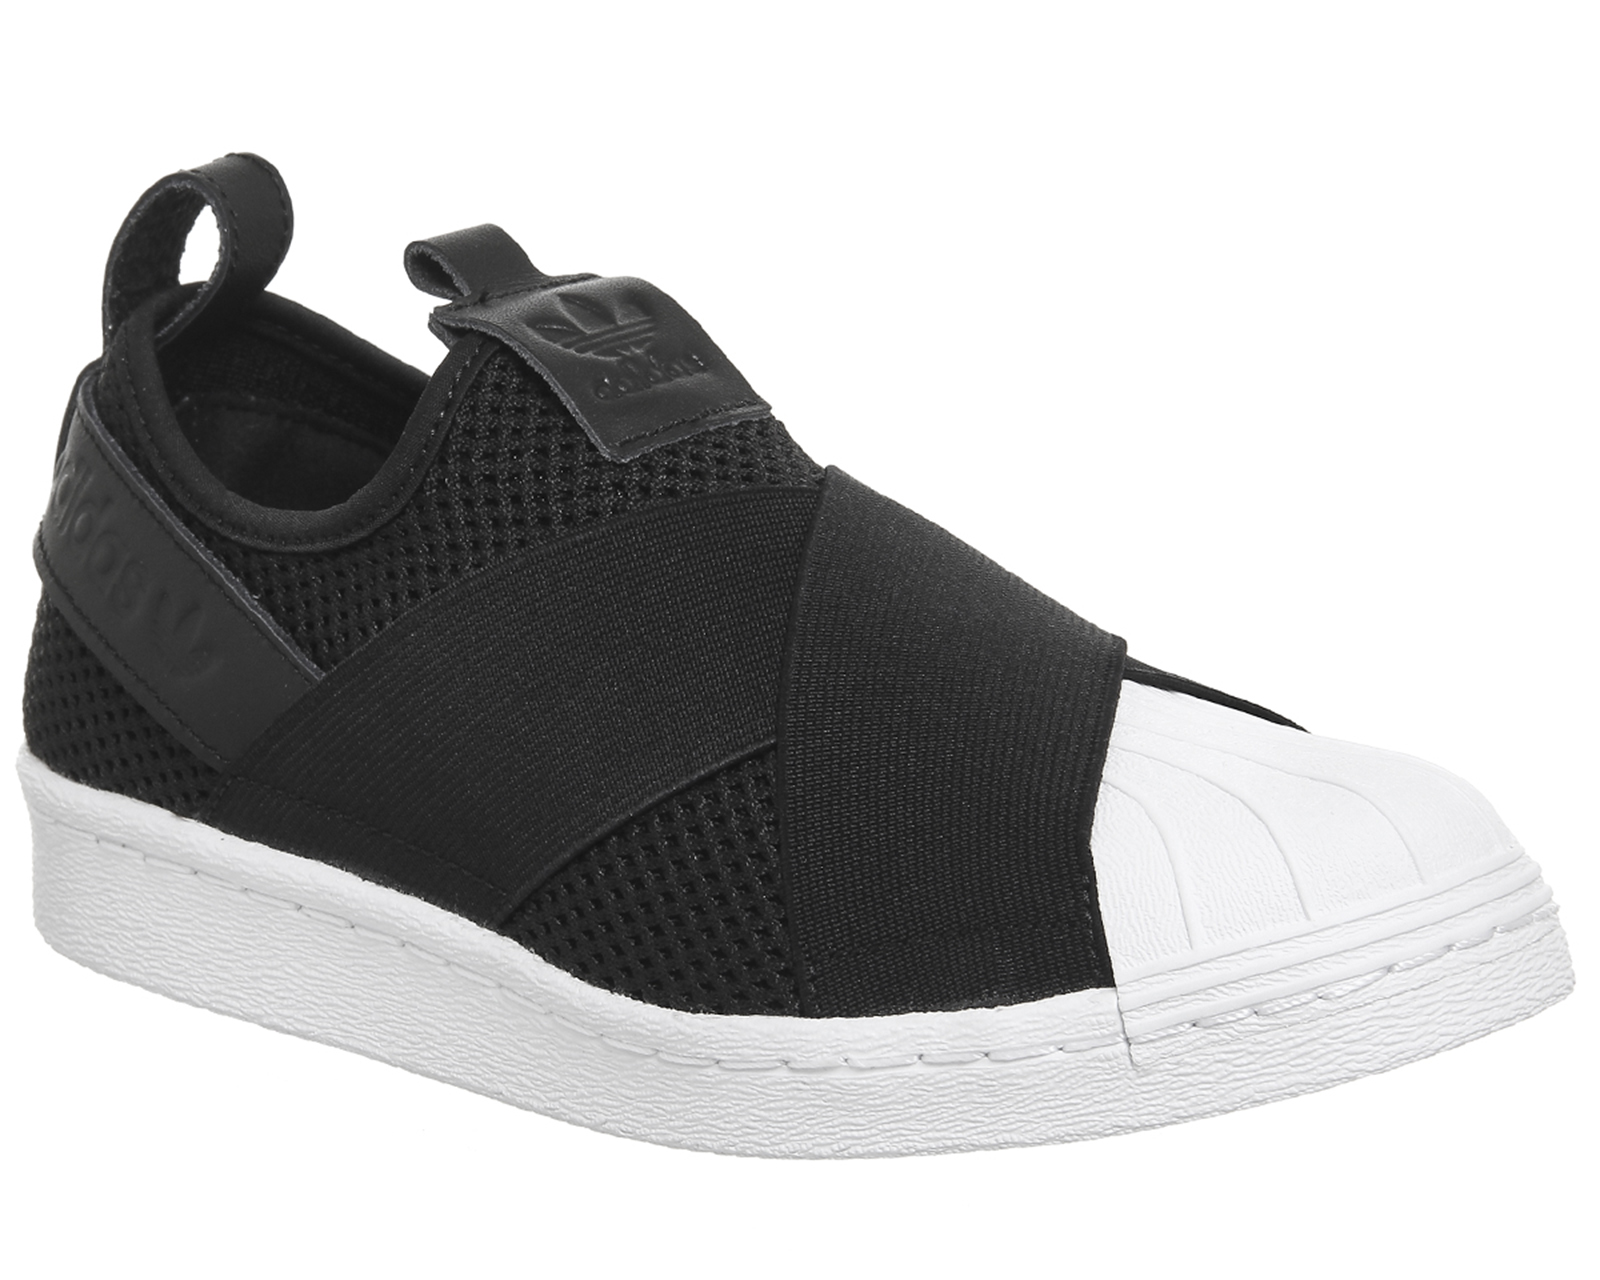 reputable site 1abb0 7339a Superstar Slip On